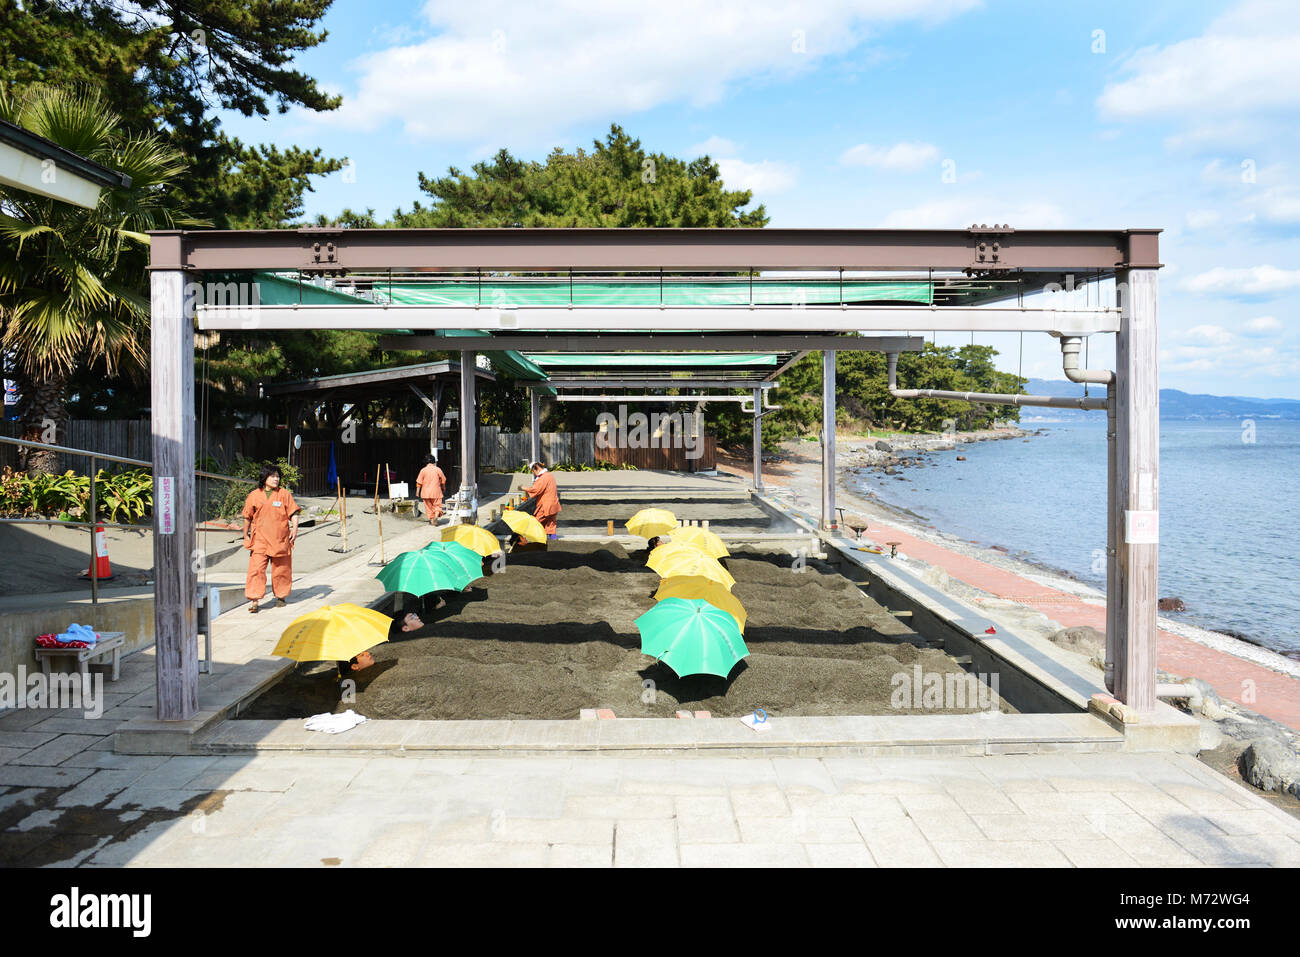 A unique sand bath at Kamegawa onsen by the ocean at Beppu. - Stock Image